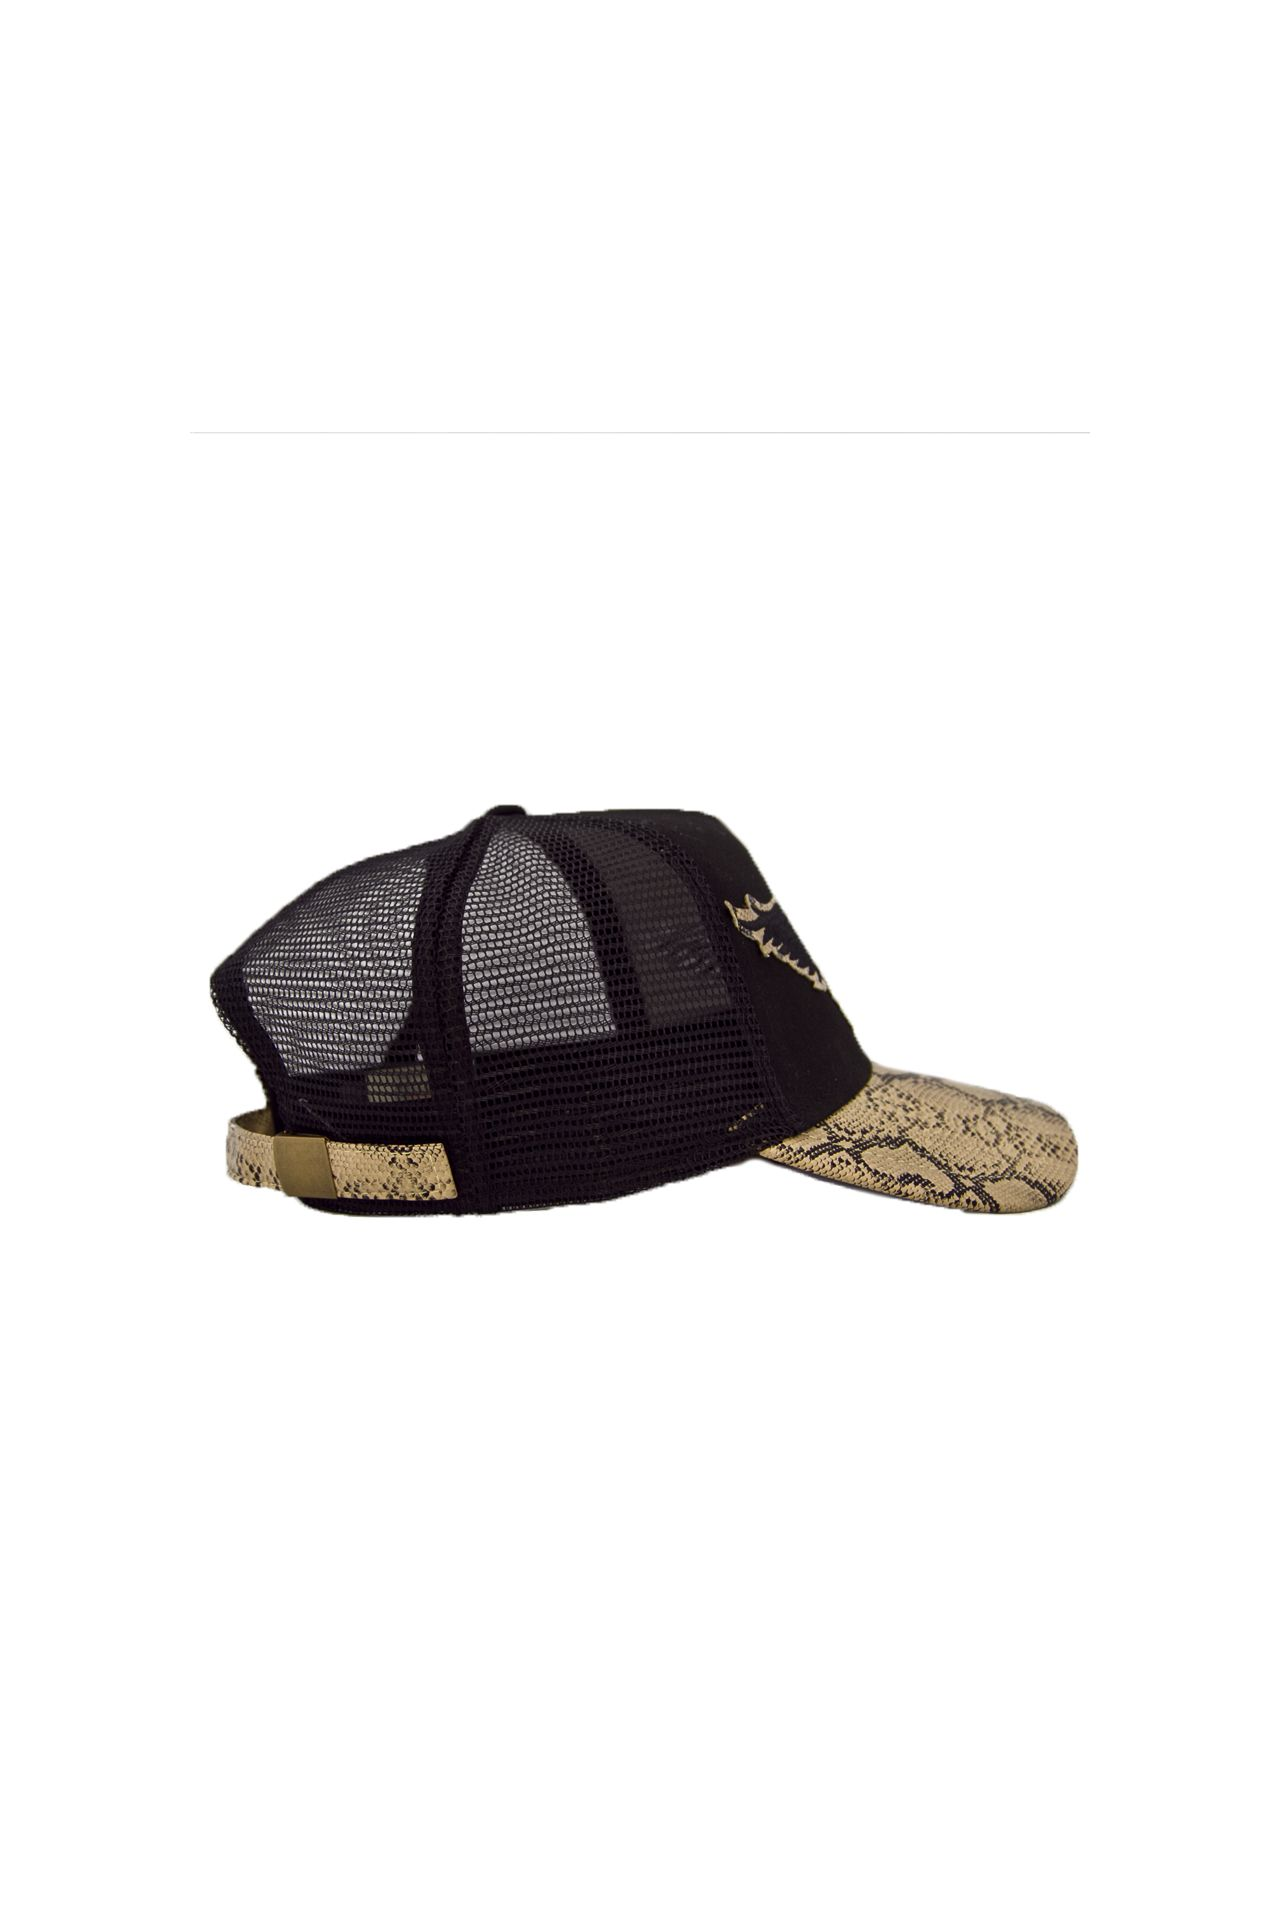 BLACK TWILL CAP WITH BEIGE VISOR